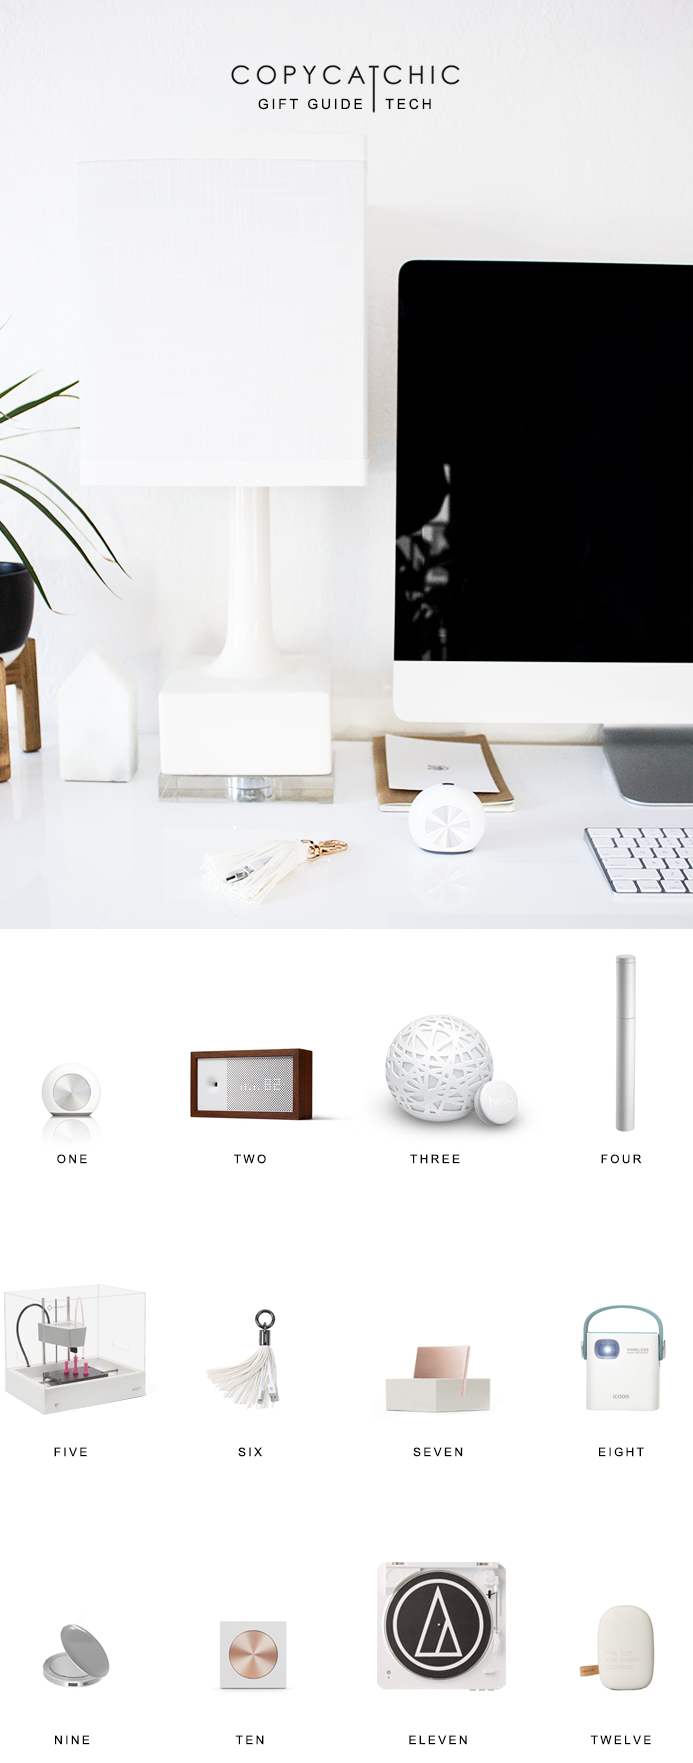 Modern minimalist tech for design lovers. Perfect Christmas gifts   Copy Cat Chic techie favorites for the 2016 holiday season!   Luxe living for less